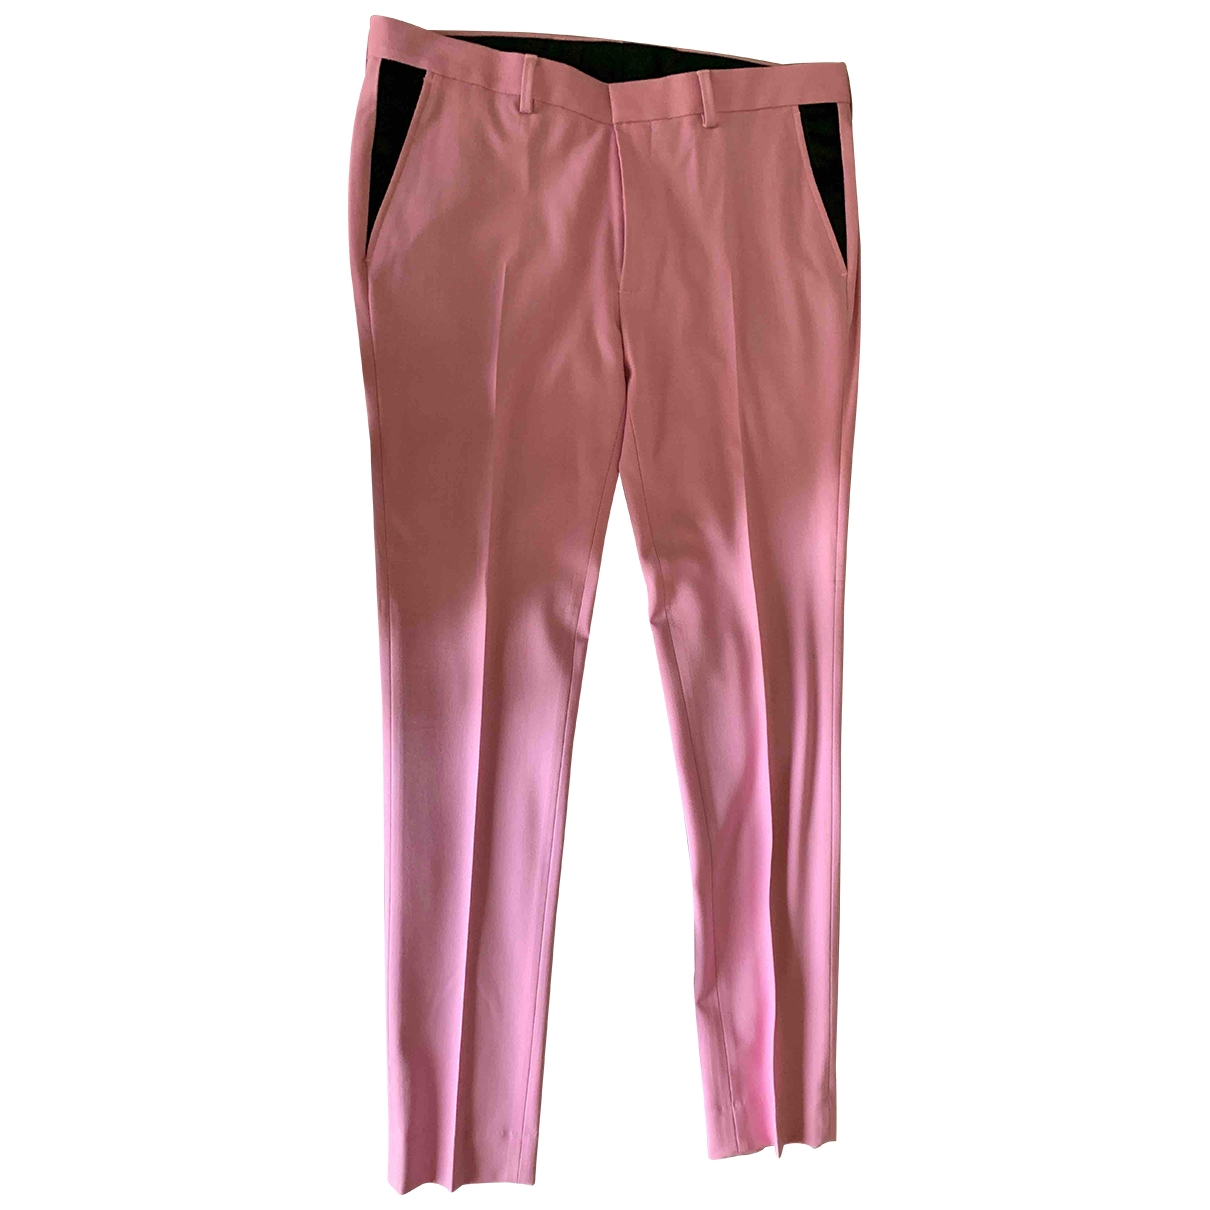 Asos \N Pink Trousers for Men 34 UK - US